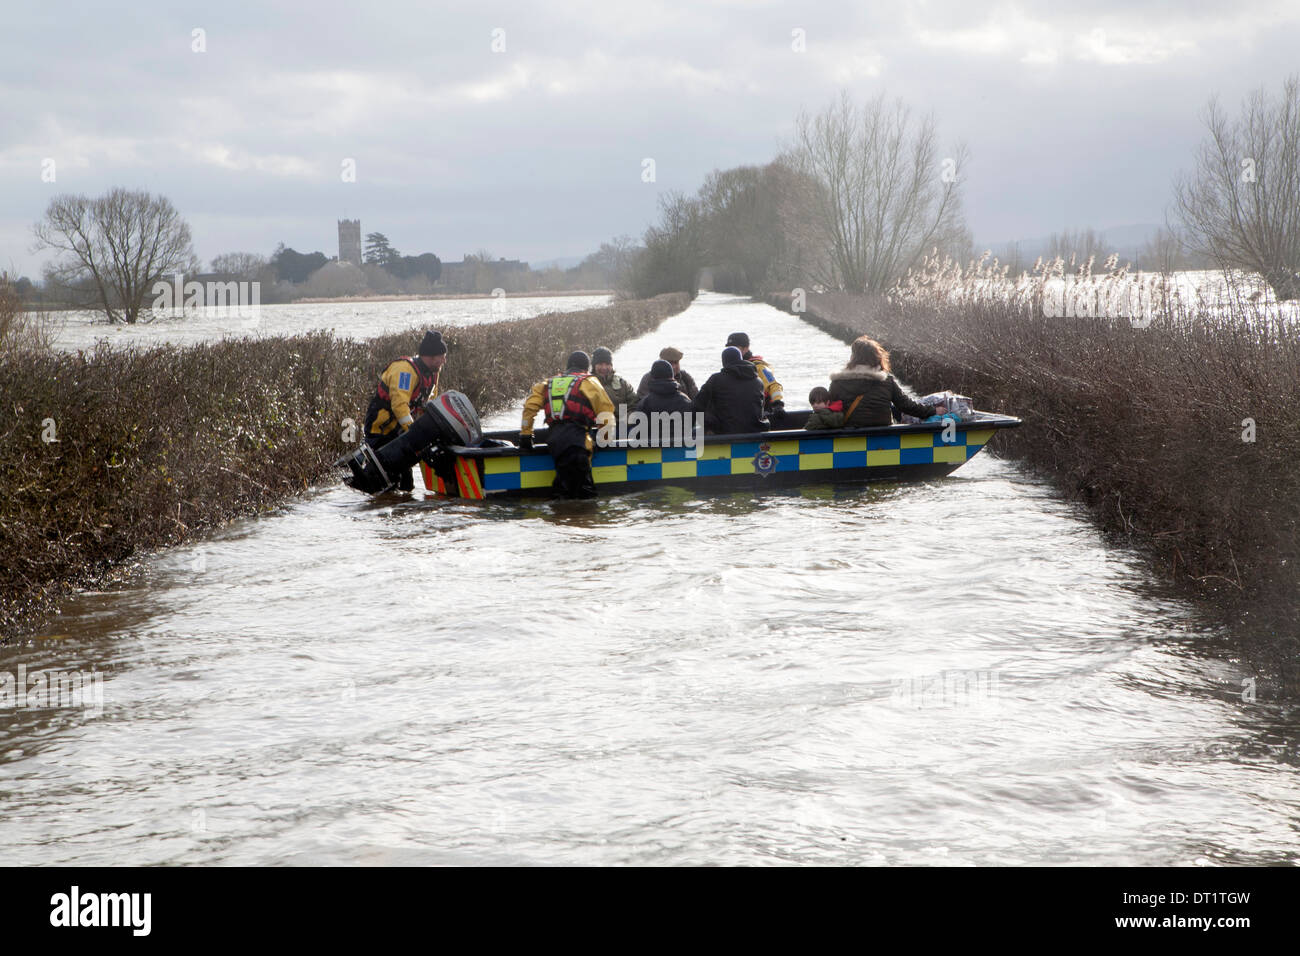 Emergency services humanitarian boat service for cut-off residents of Muchelney, near Langport, Somerset Levels, England - Stock Image